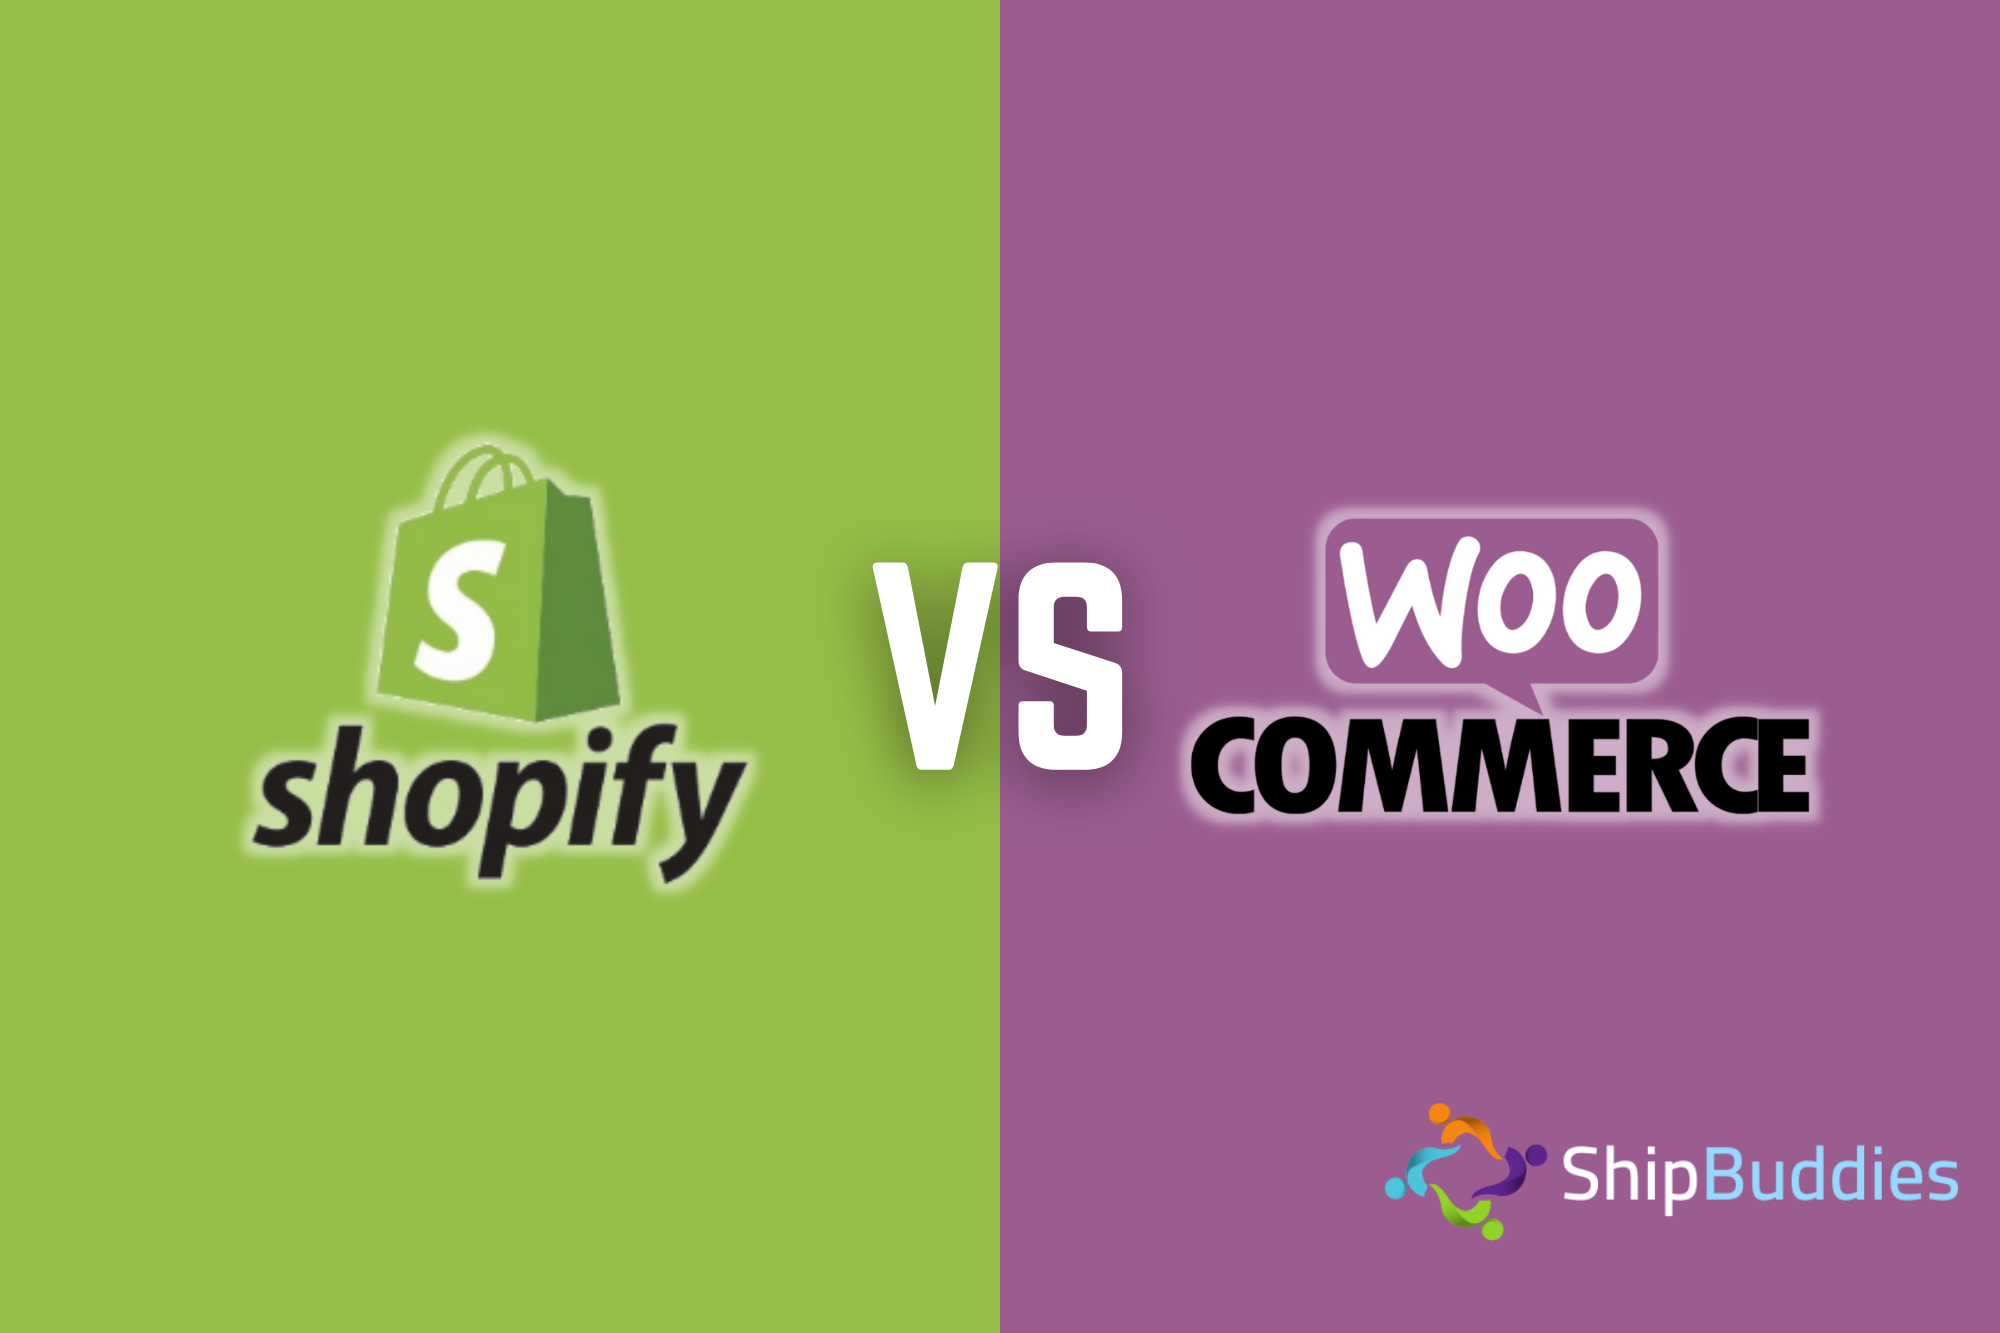 banner image featuring shopify and WooCommerce